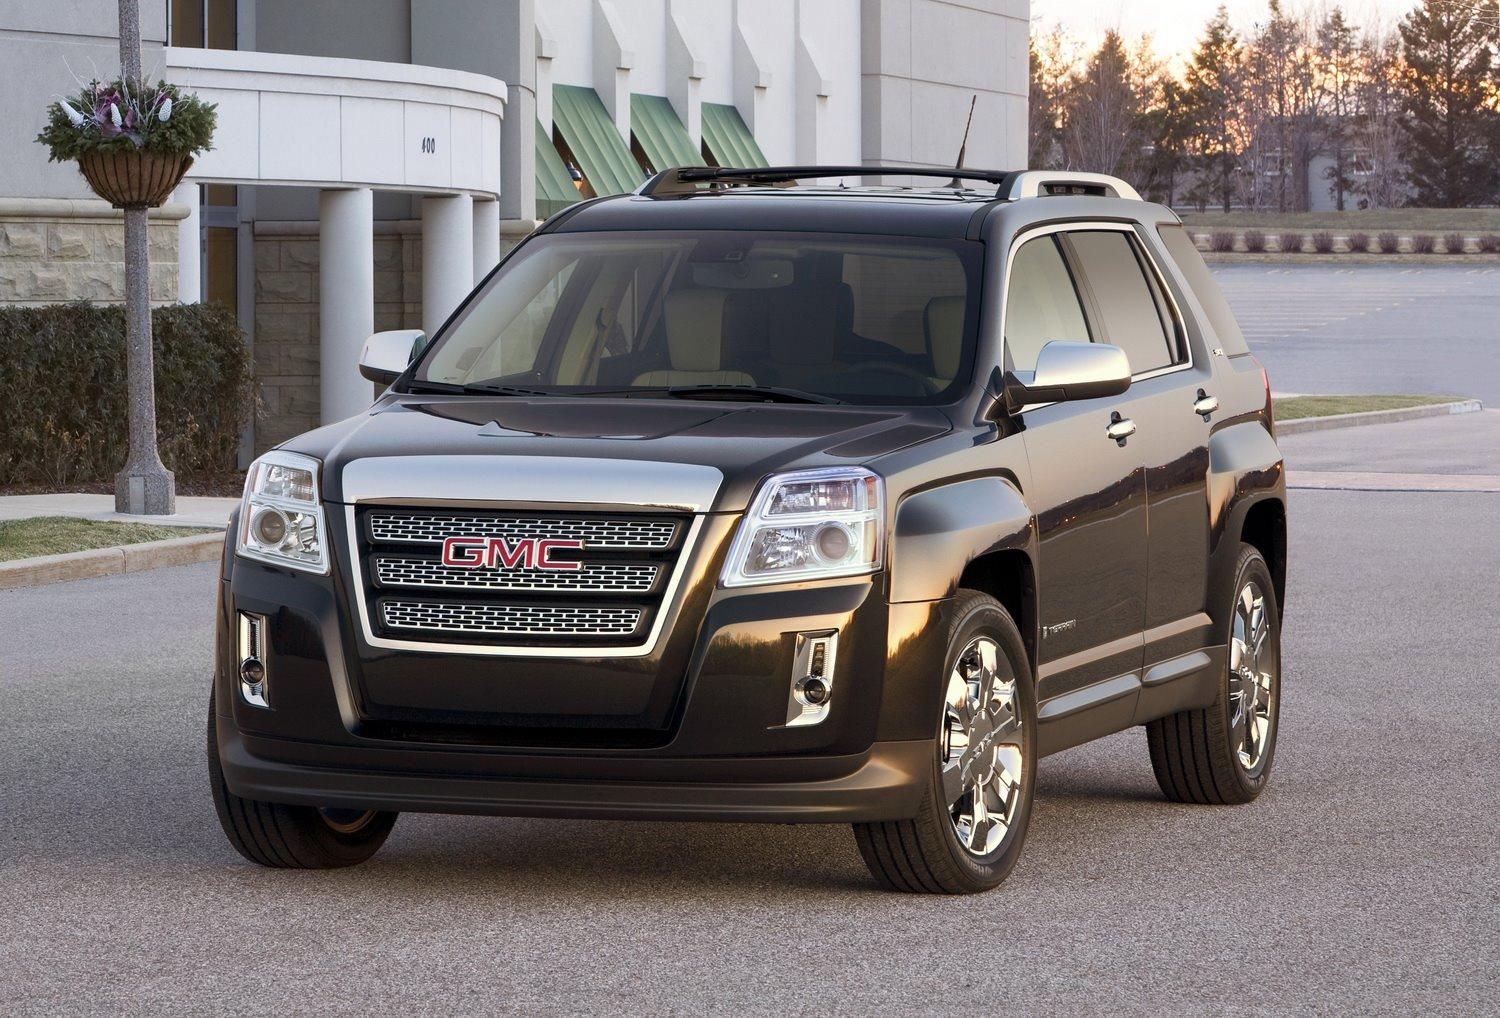 2010 gmc terrain suv img 1 it s your auto world new cars auto news reviews photos. Black Bedroom Furniture Sets. Home Design Ideas